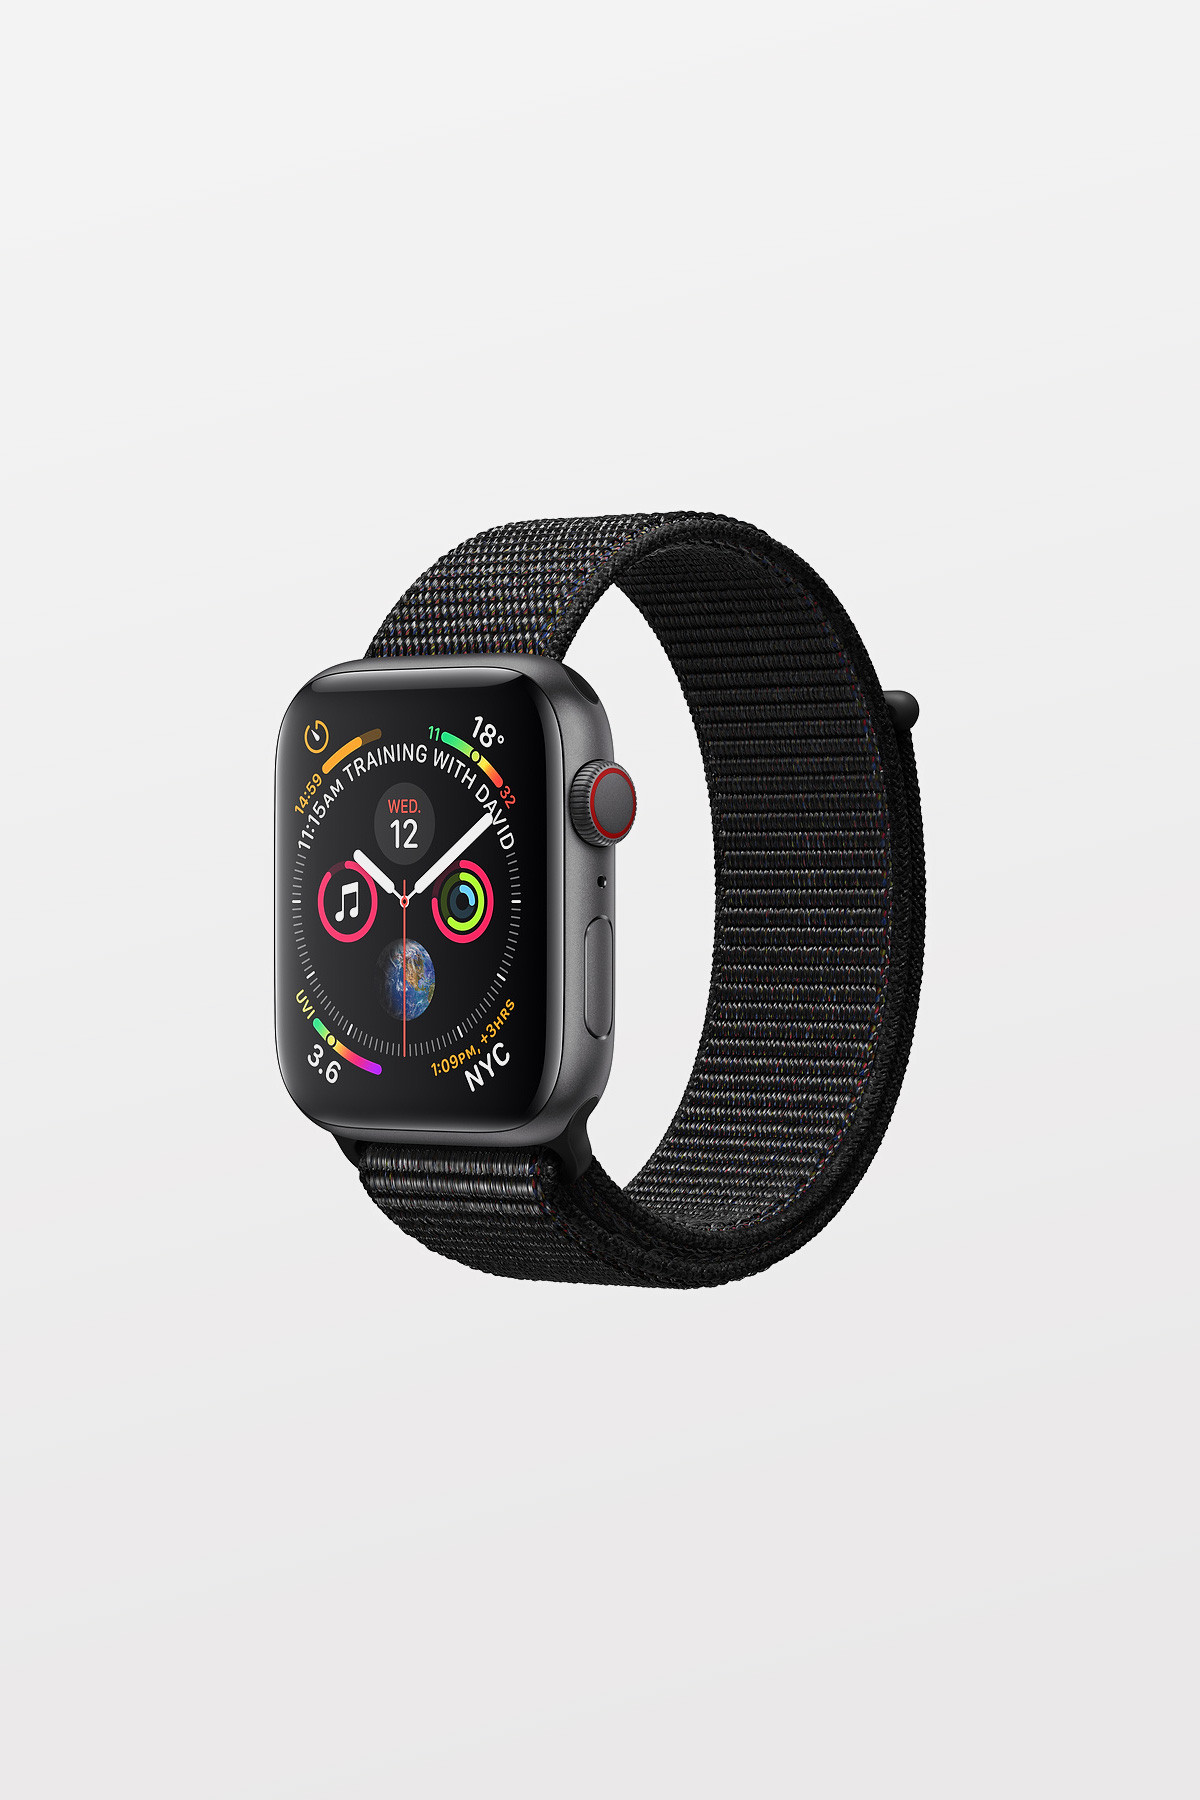 Apple Watch Series 4 Cellular - 40mm - Space Grey Aluminium Case with Black Sport Loop